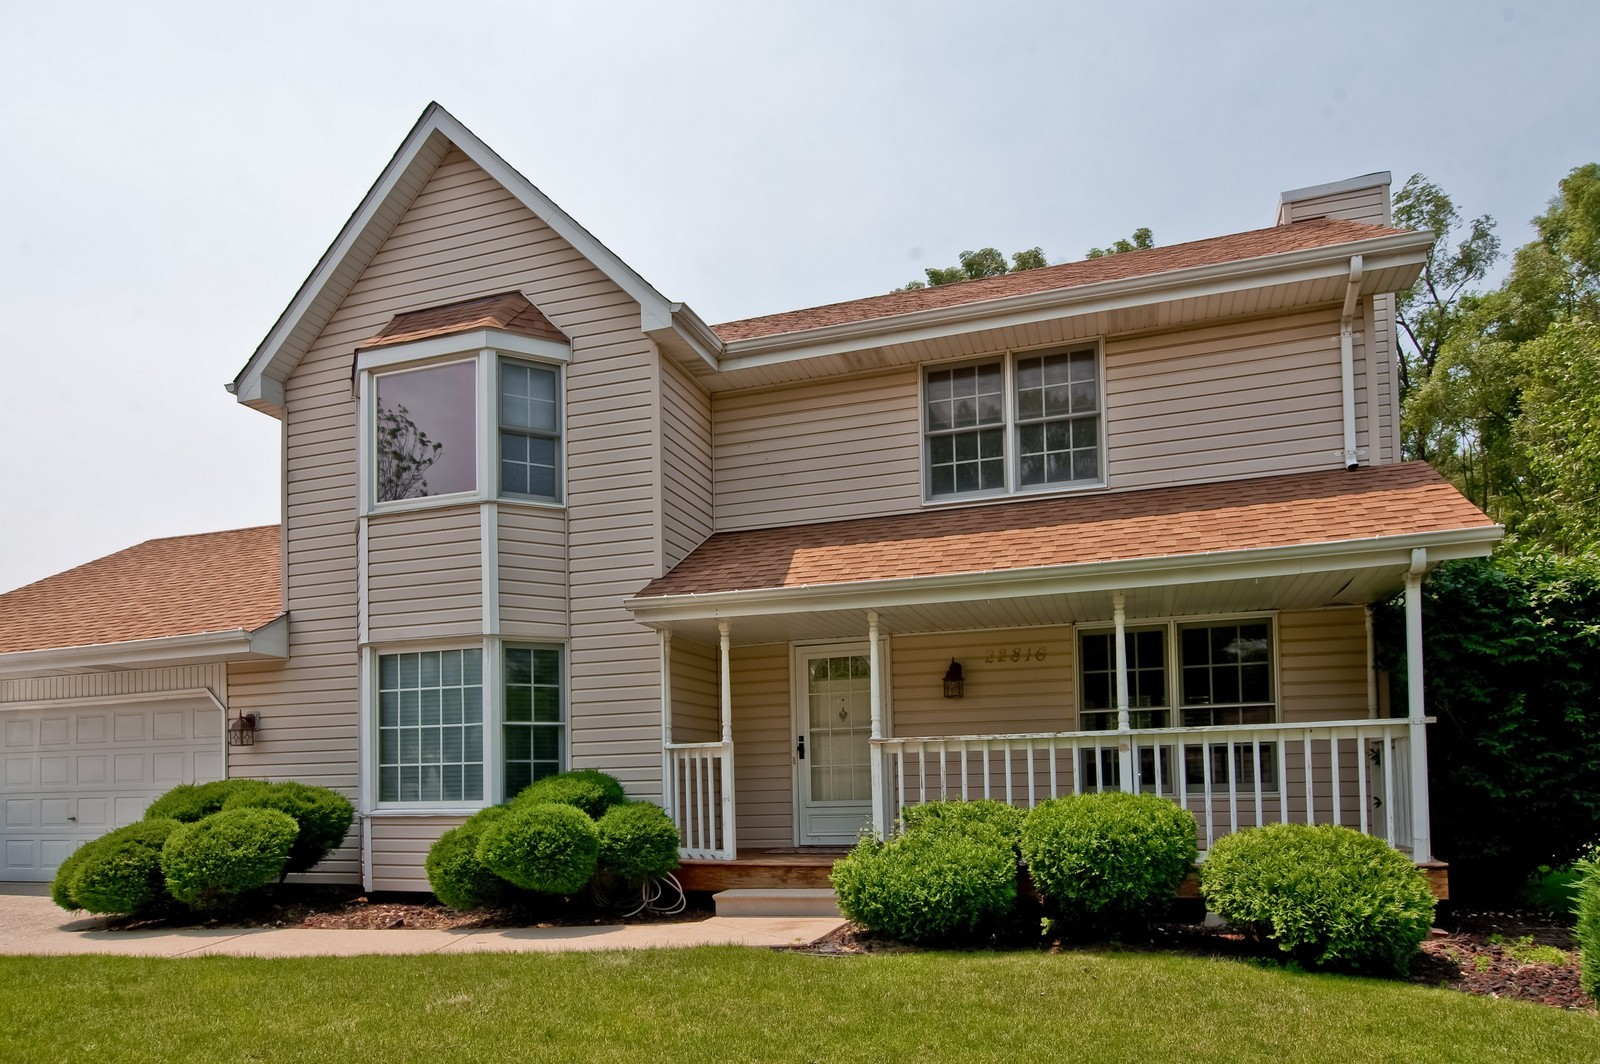 Real Estate Photography - 22816 S Michael Dr, Channahon, IL, 60410 - Front View